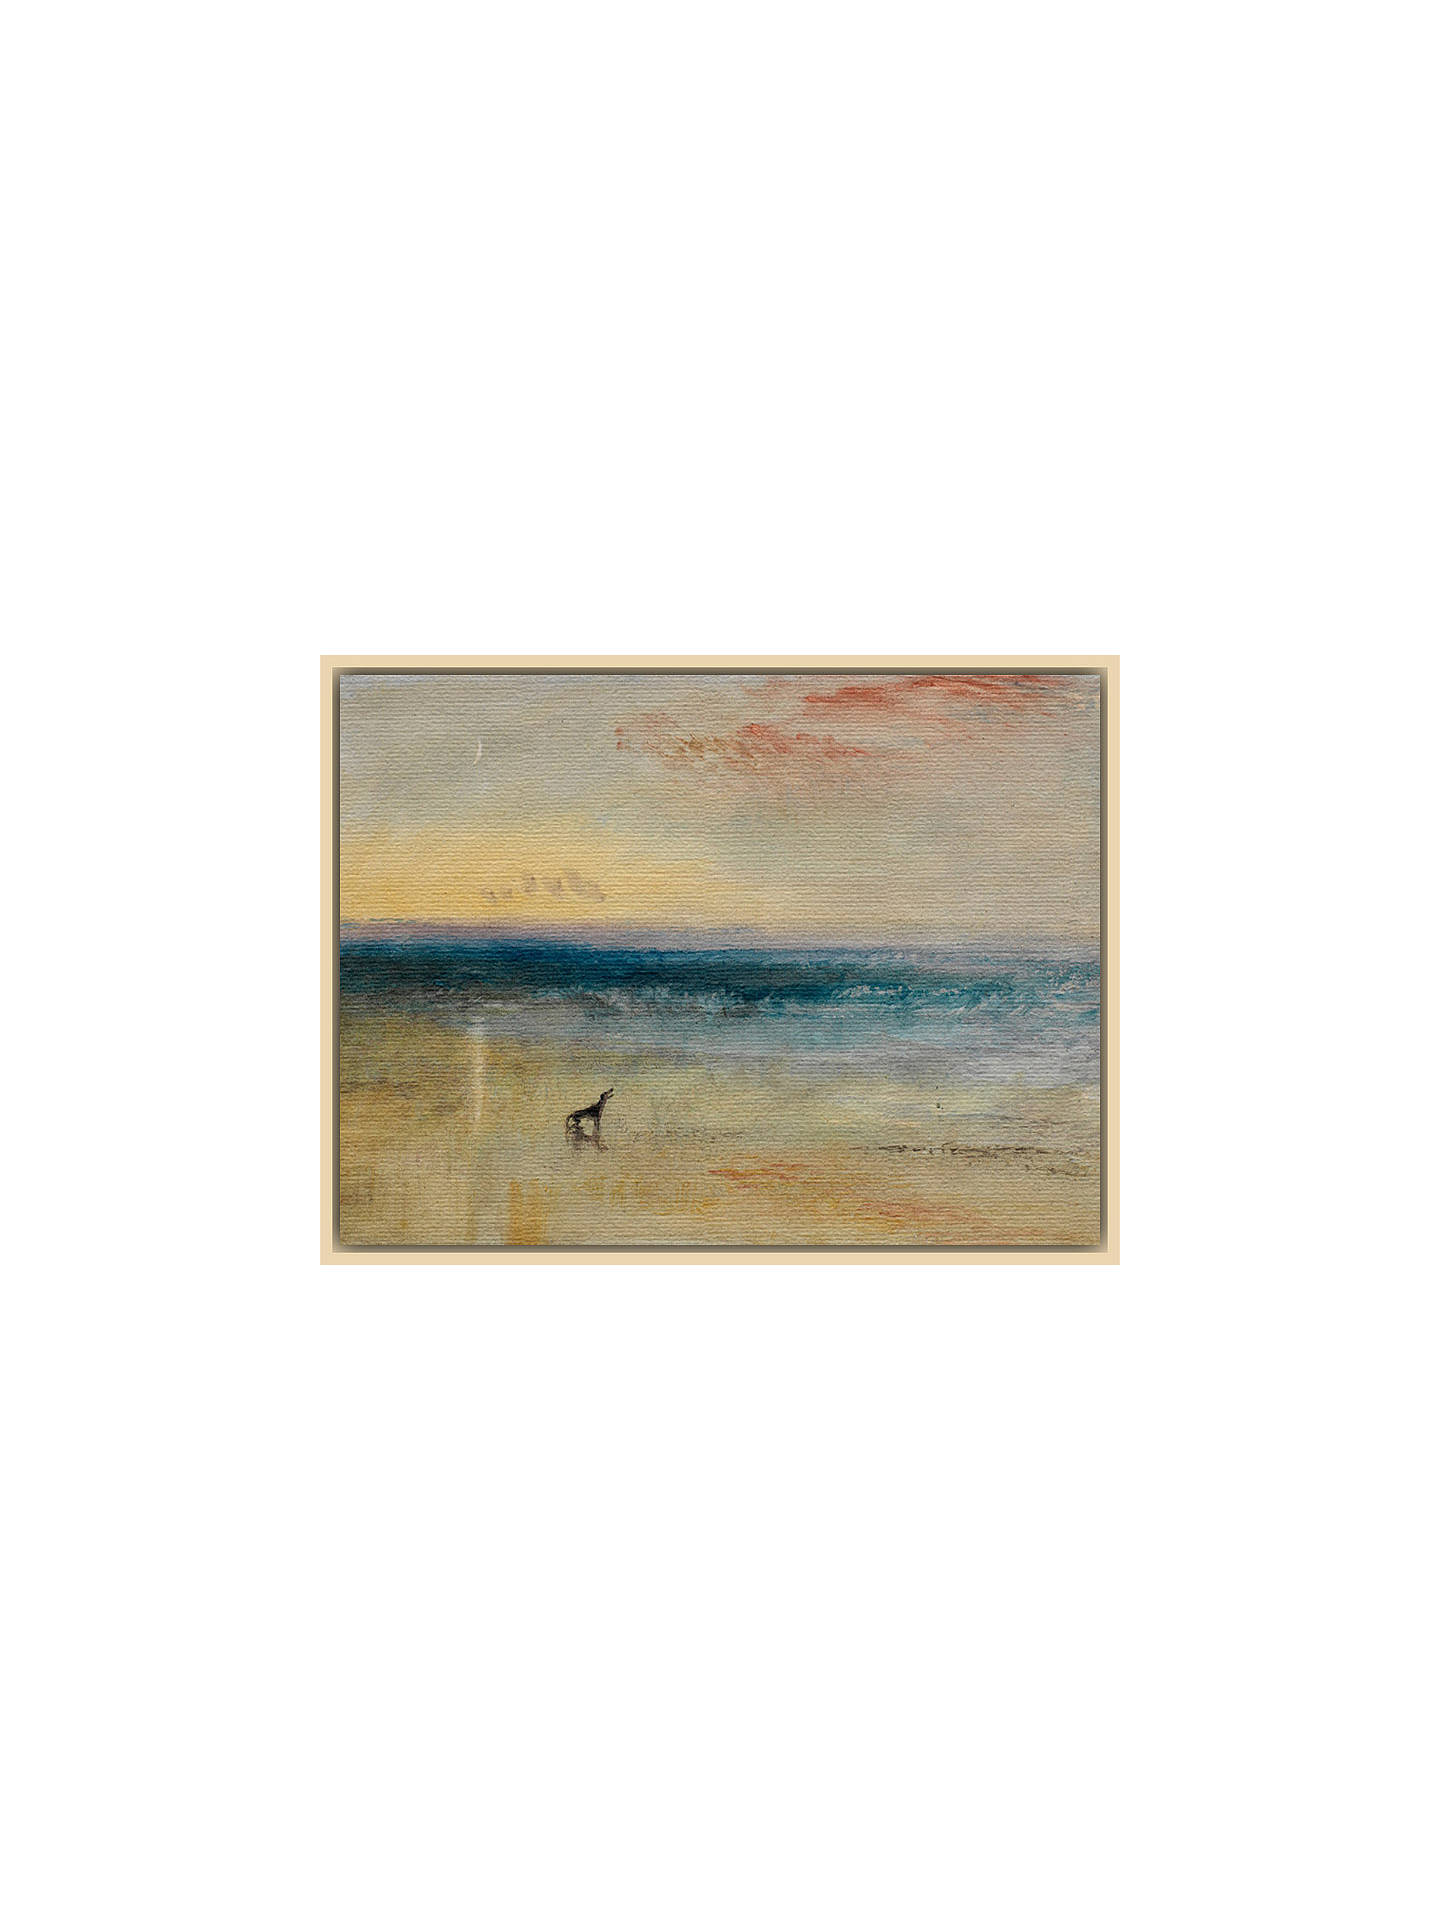 BuyThe Courtauld Gallery, Joseph Mallord William Turner - Dawn After the Wreck Circa 1841 Print, Natural Ash Framed Canvas, 60 x 80cm Online at johnlewis.com